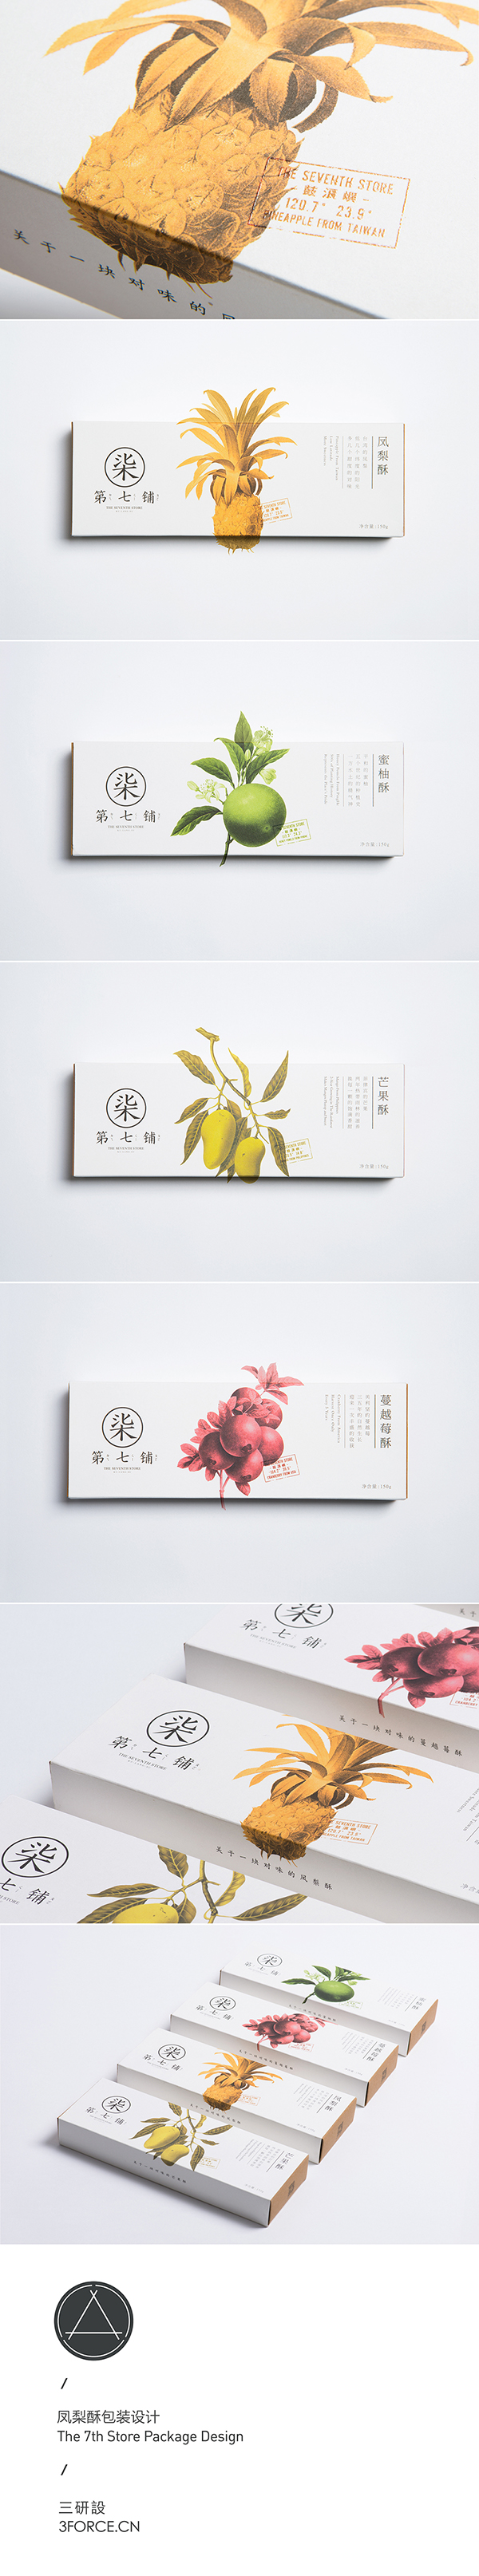 The 7th Store Pineapple Pie Packaging / 第七鋪鳳梨酥系列包裝設計 on Packaging Design Served